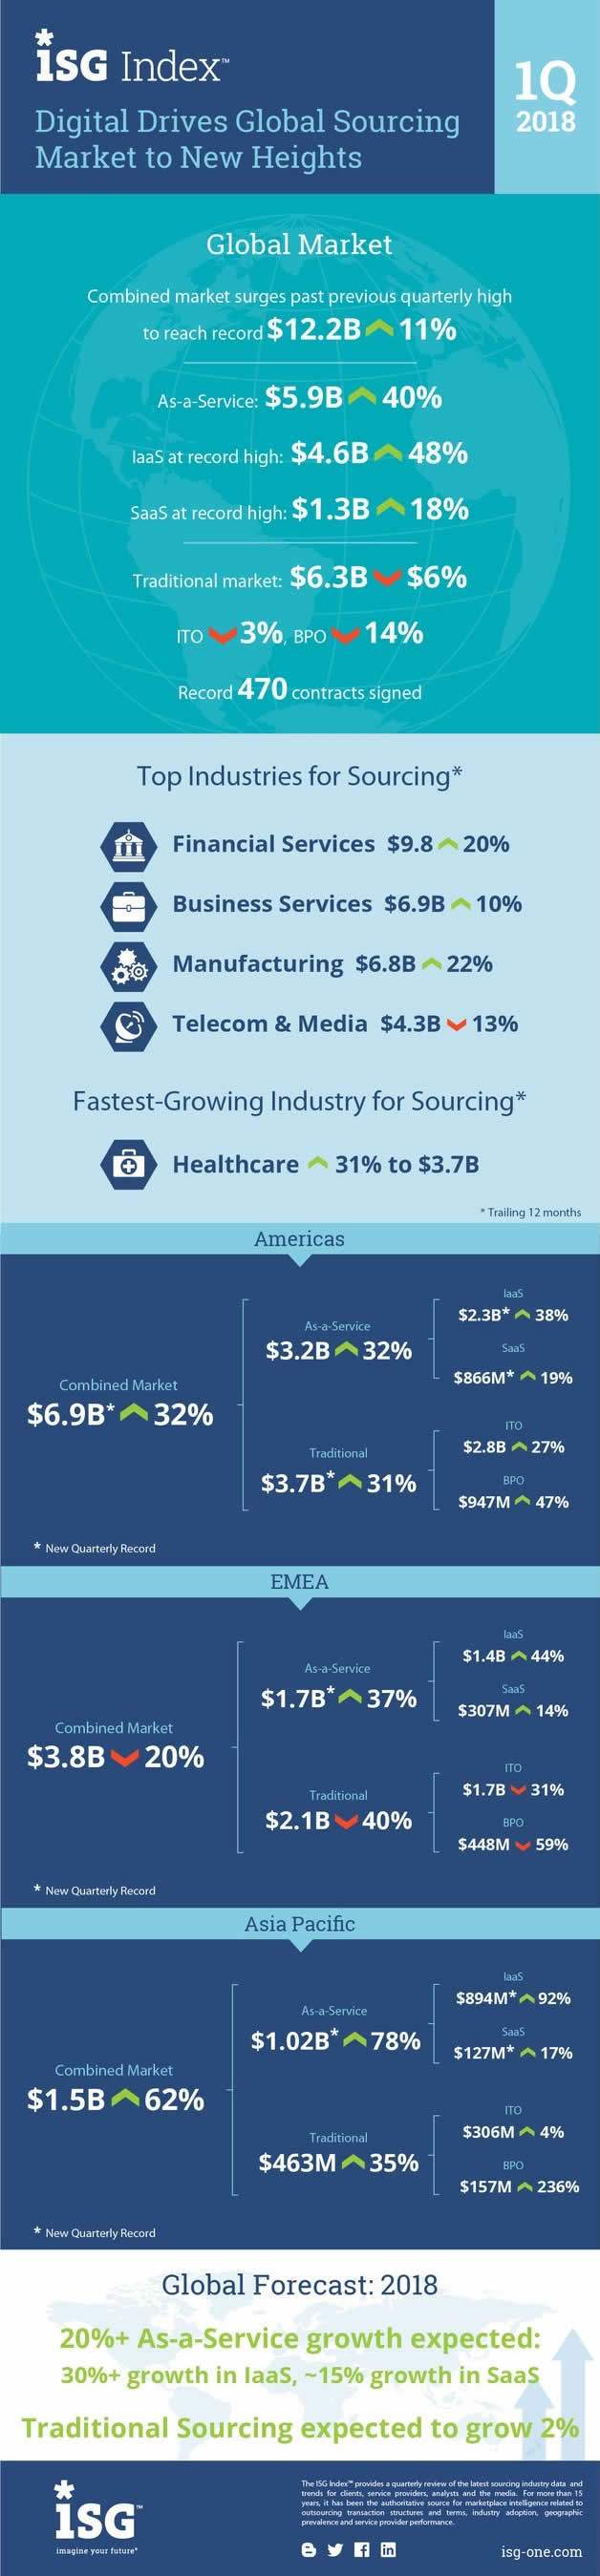 Global sourcing market driven by digital transformation and as-a-Service - EMEA traditional sourcing down with record decline for BPO